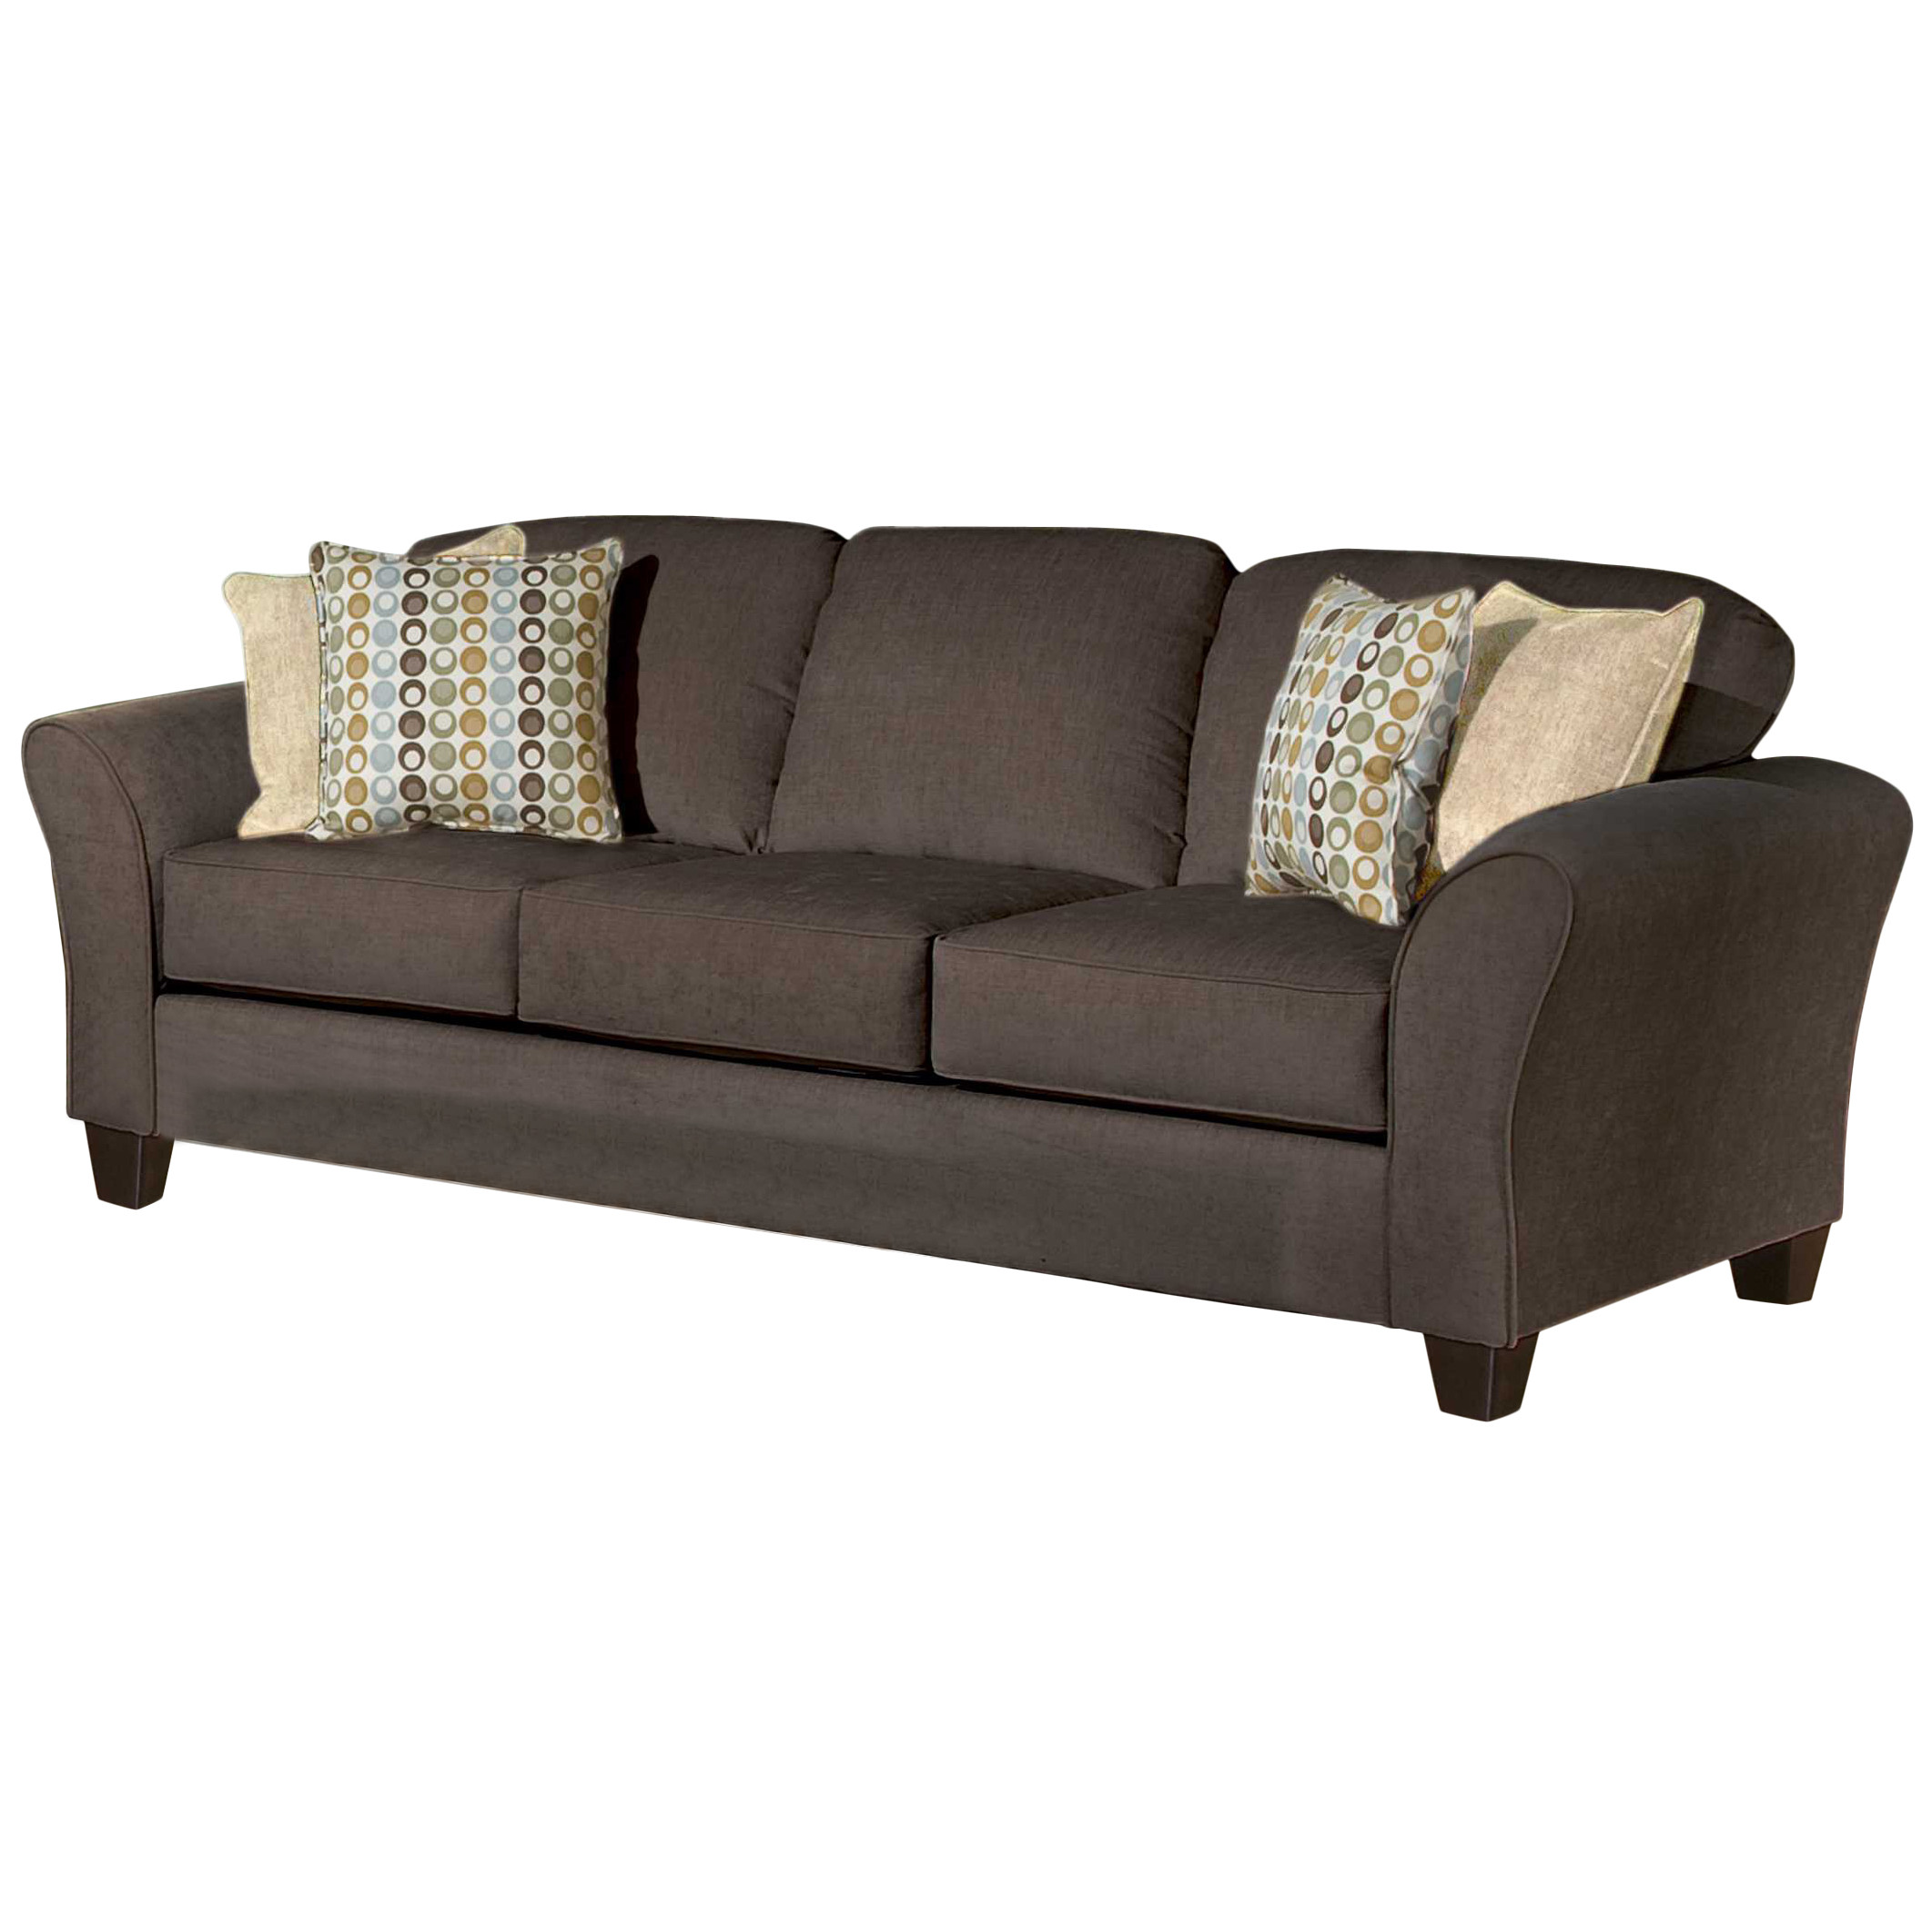 Good Franklin Sofa 52 On Sofa Design Ideas with Franklin Sofa